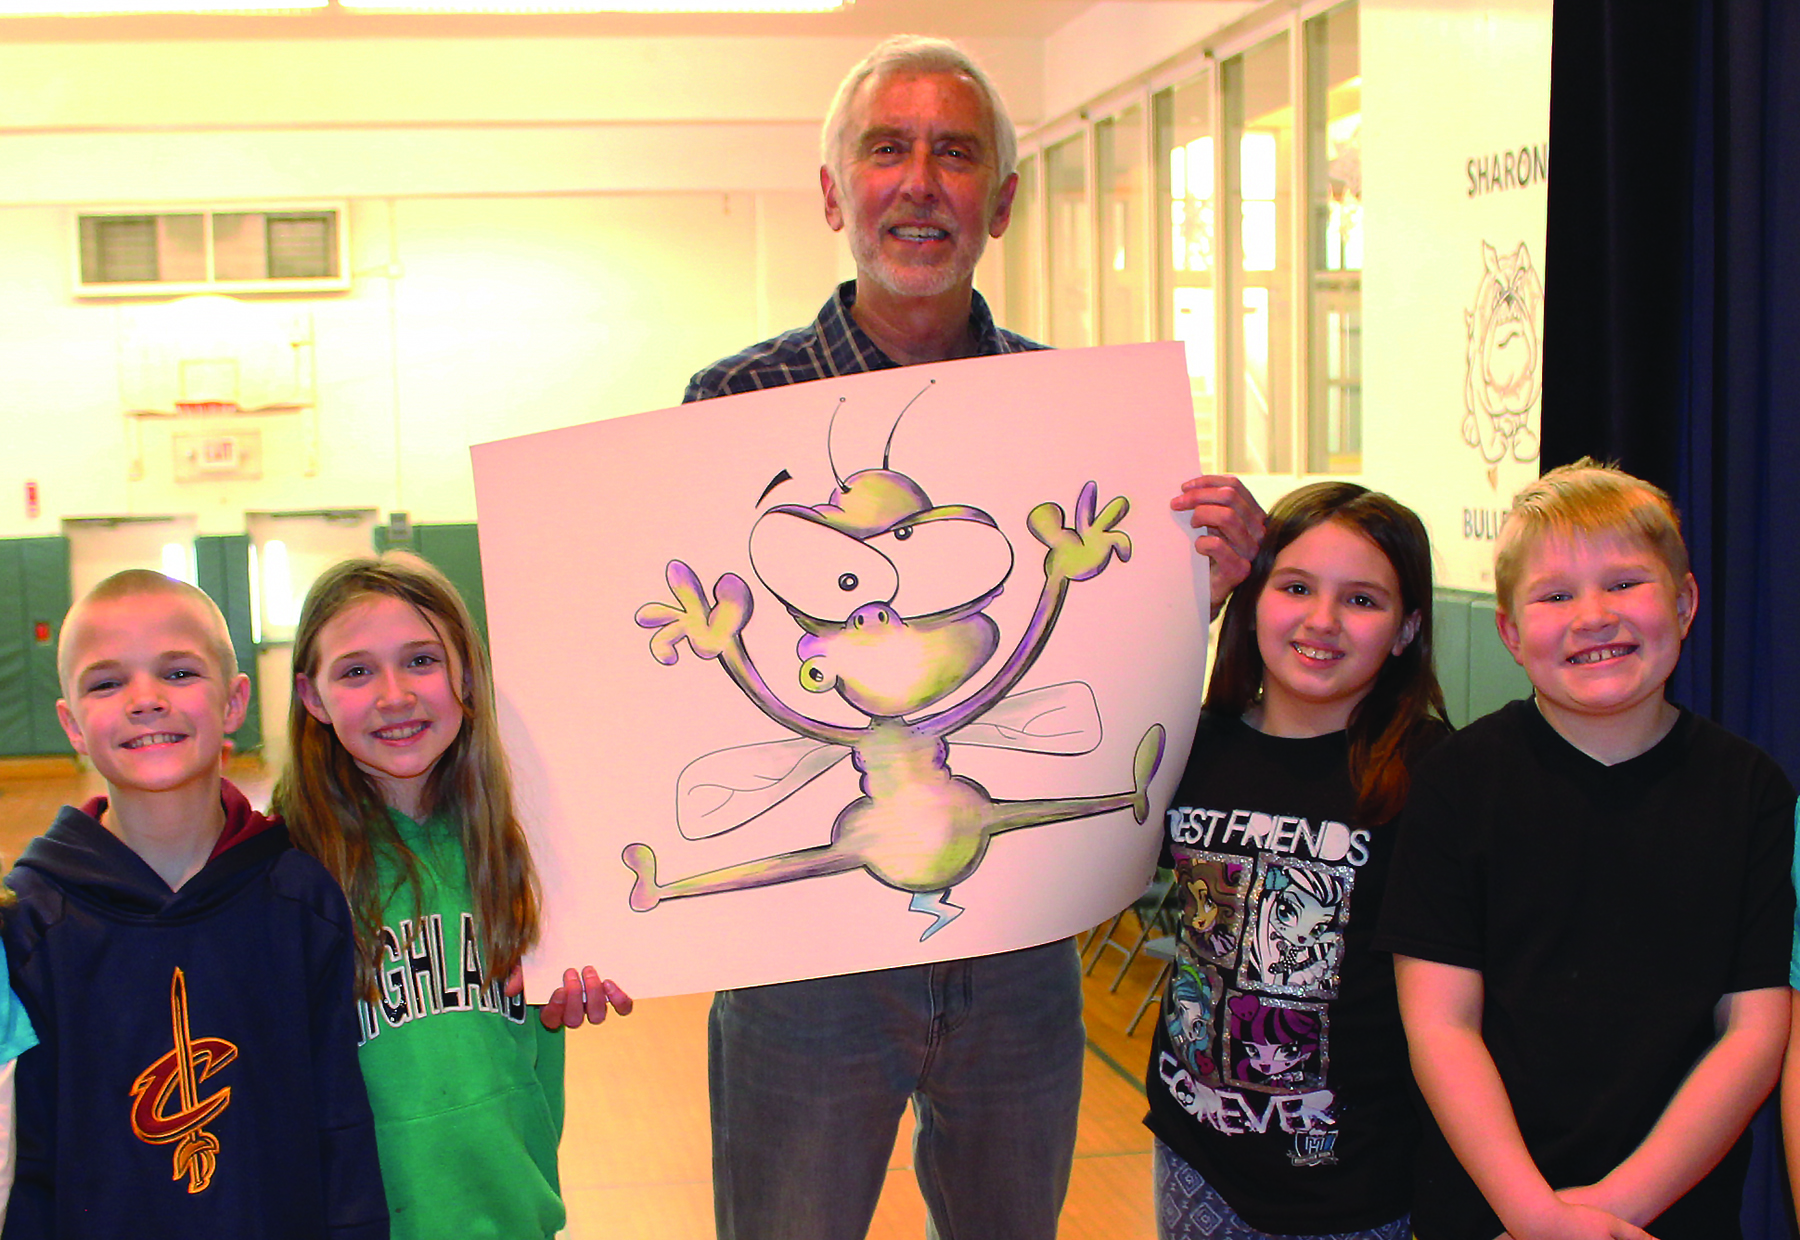 Jeff Nicholas, Highland retired teacher and artist, with Sharon students